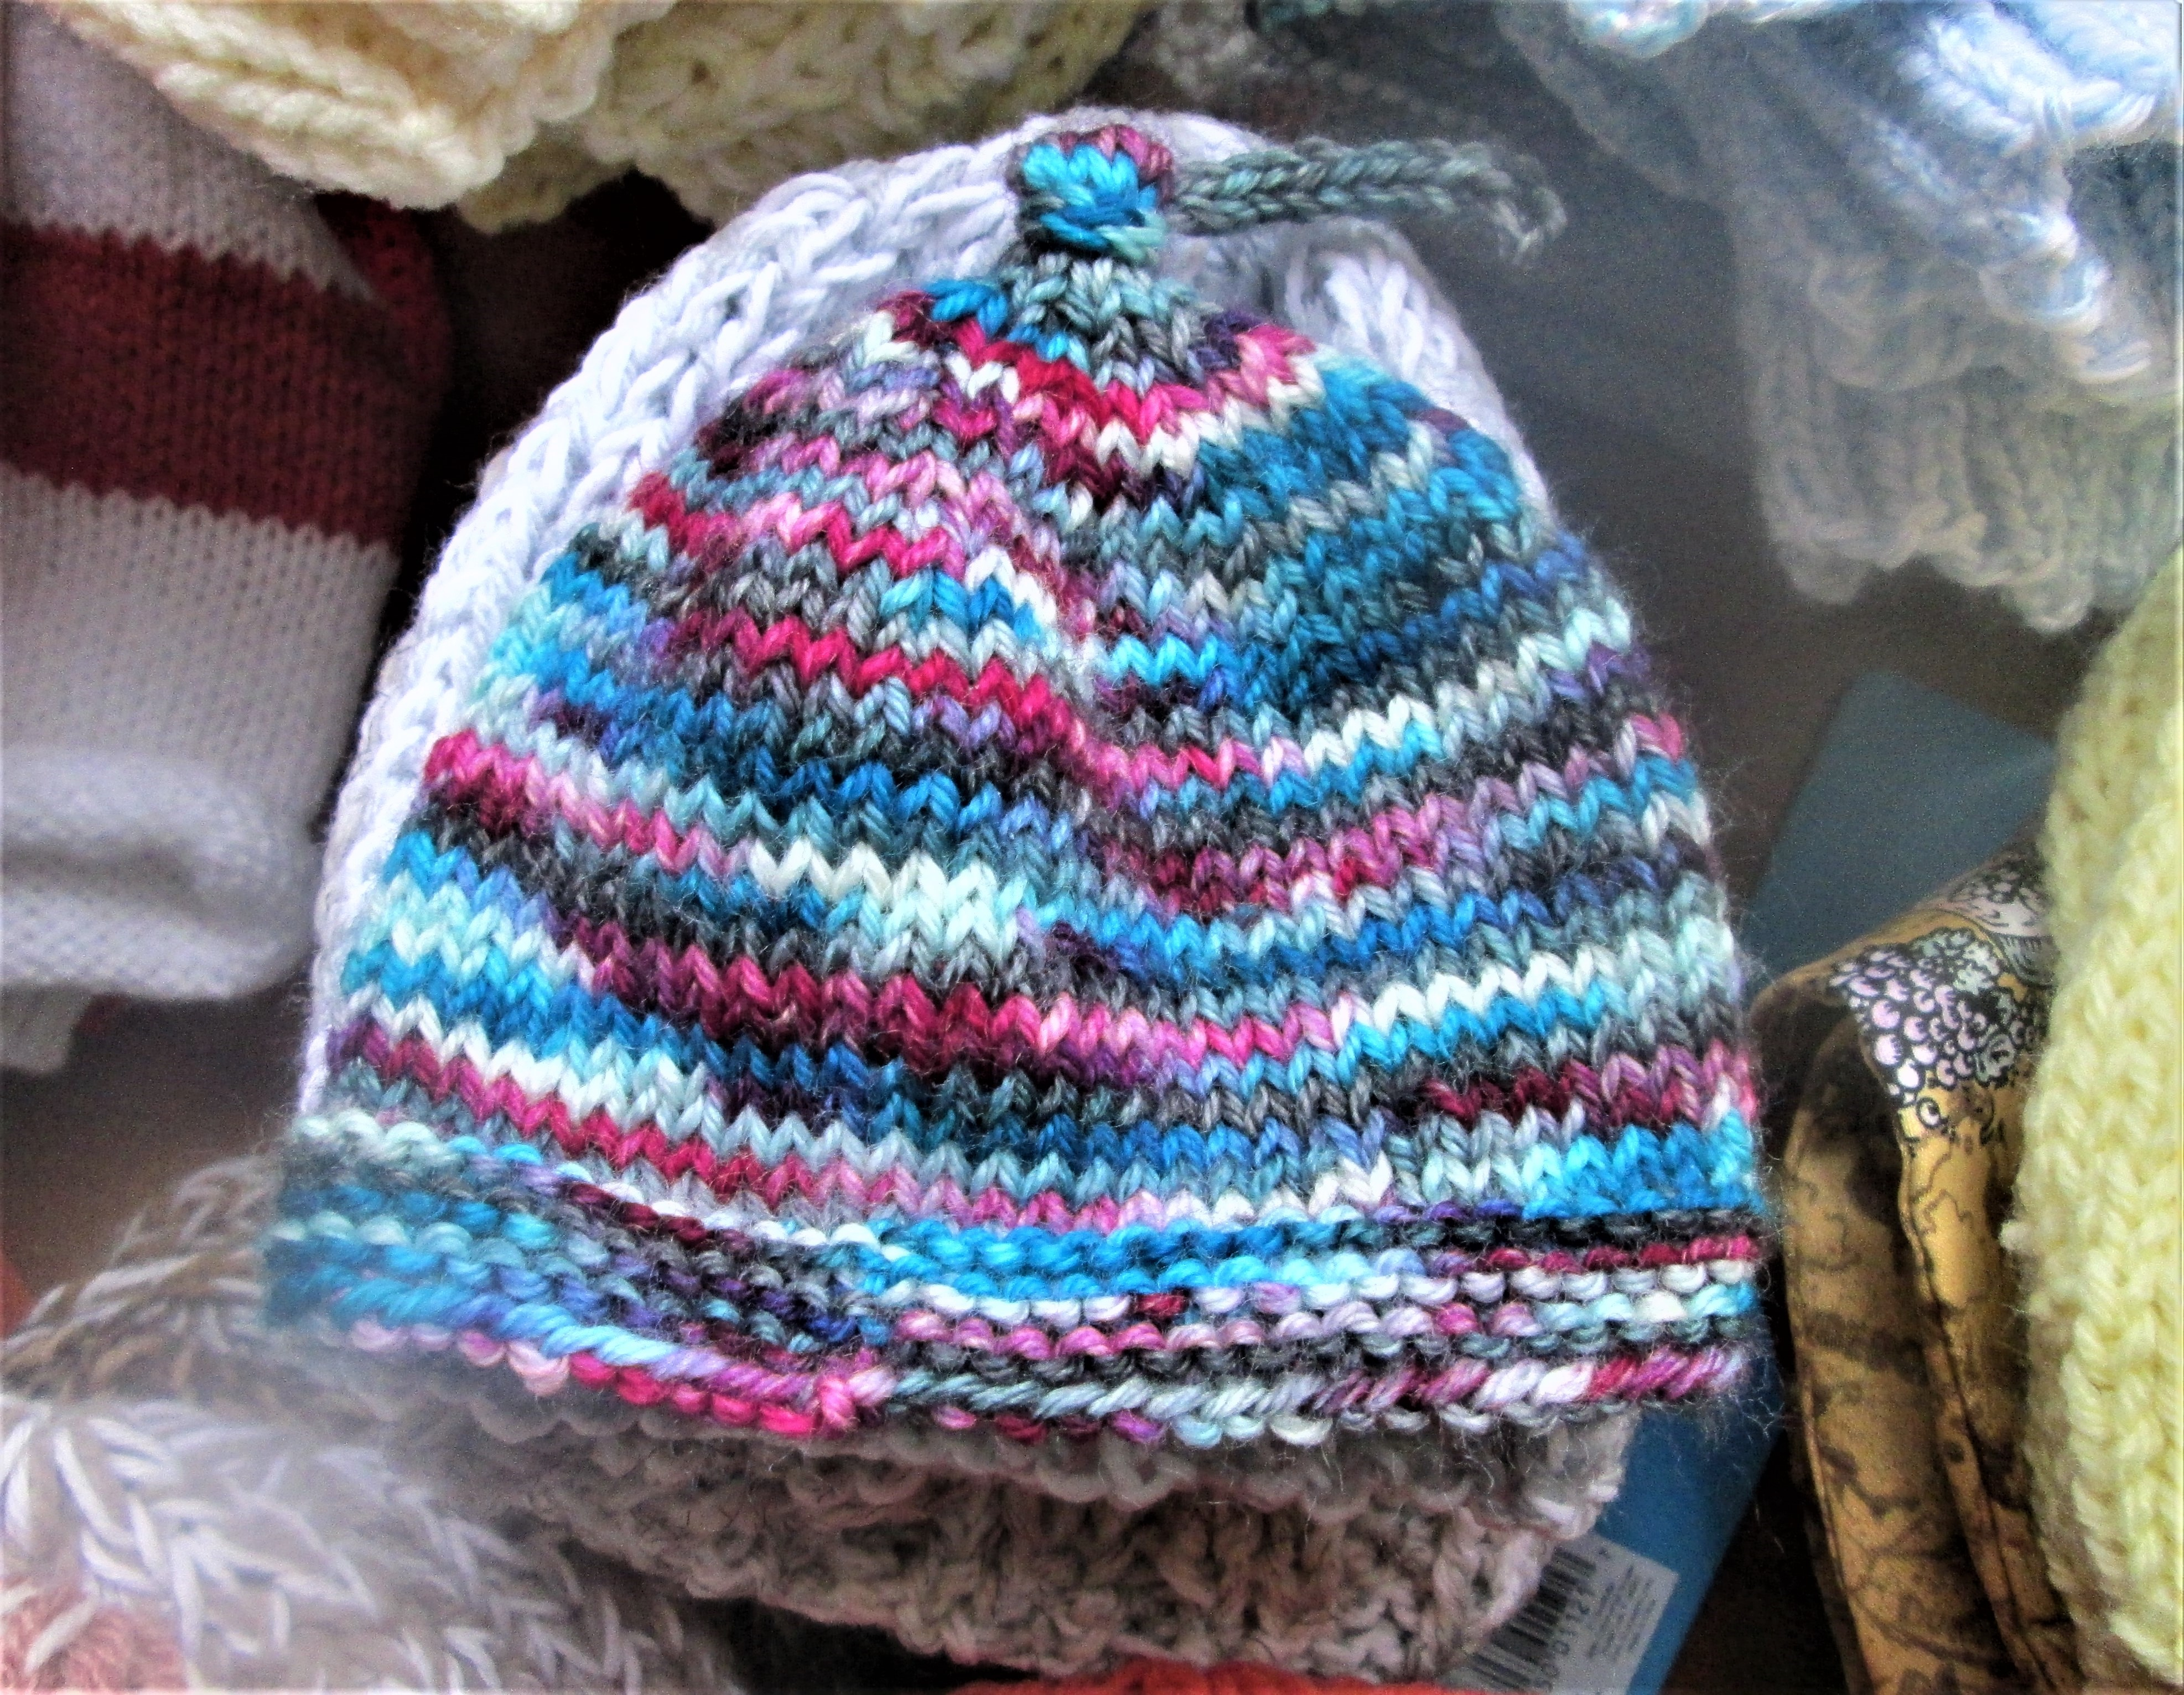 bb3cf6efdb3 Brookside Knits donates about 40 baby hats each month to the maternity ward  at Pottstown Hospital.